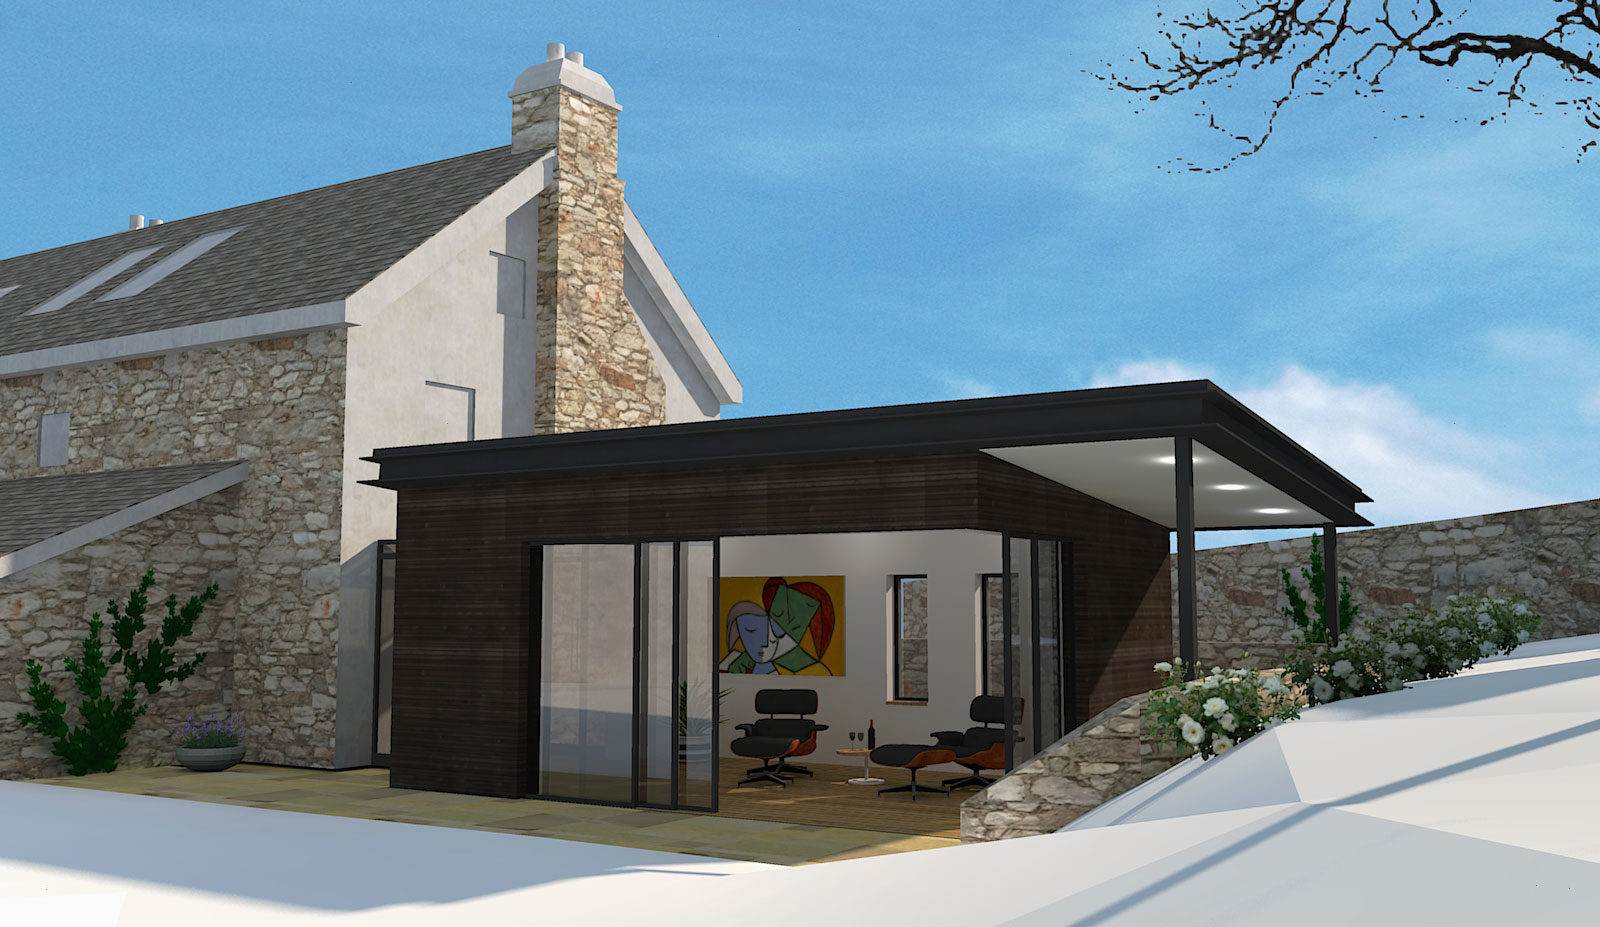 Leigh House granted planning consent by Dartmoor National Park – Rud Sawers Architects, Devon